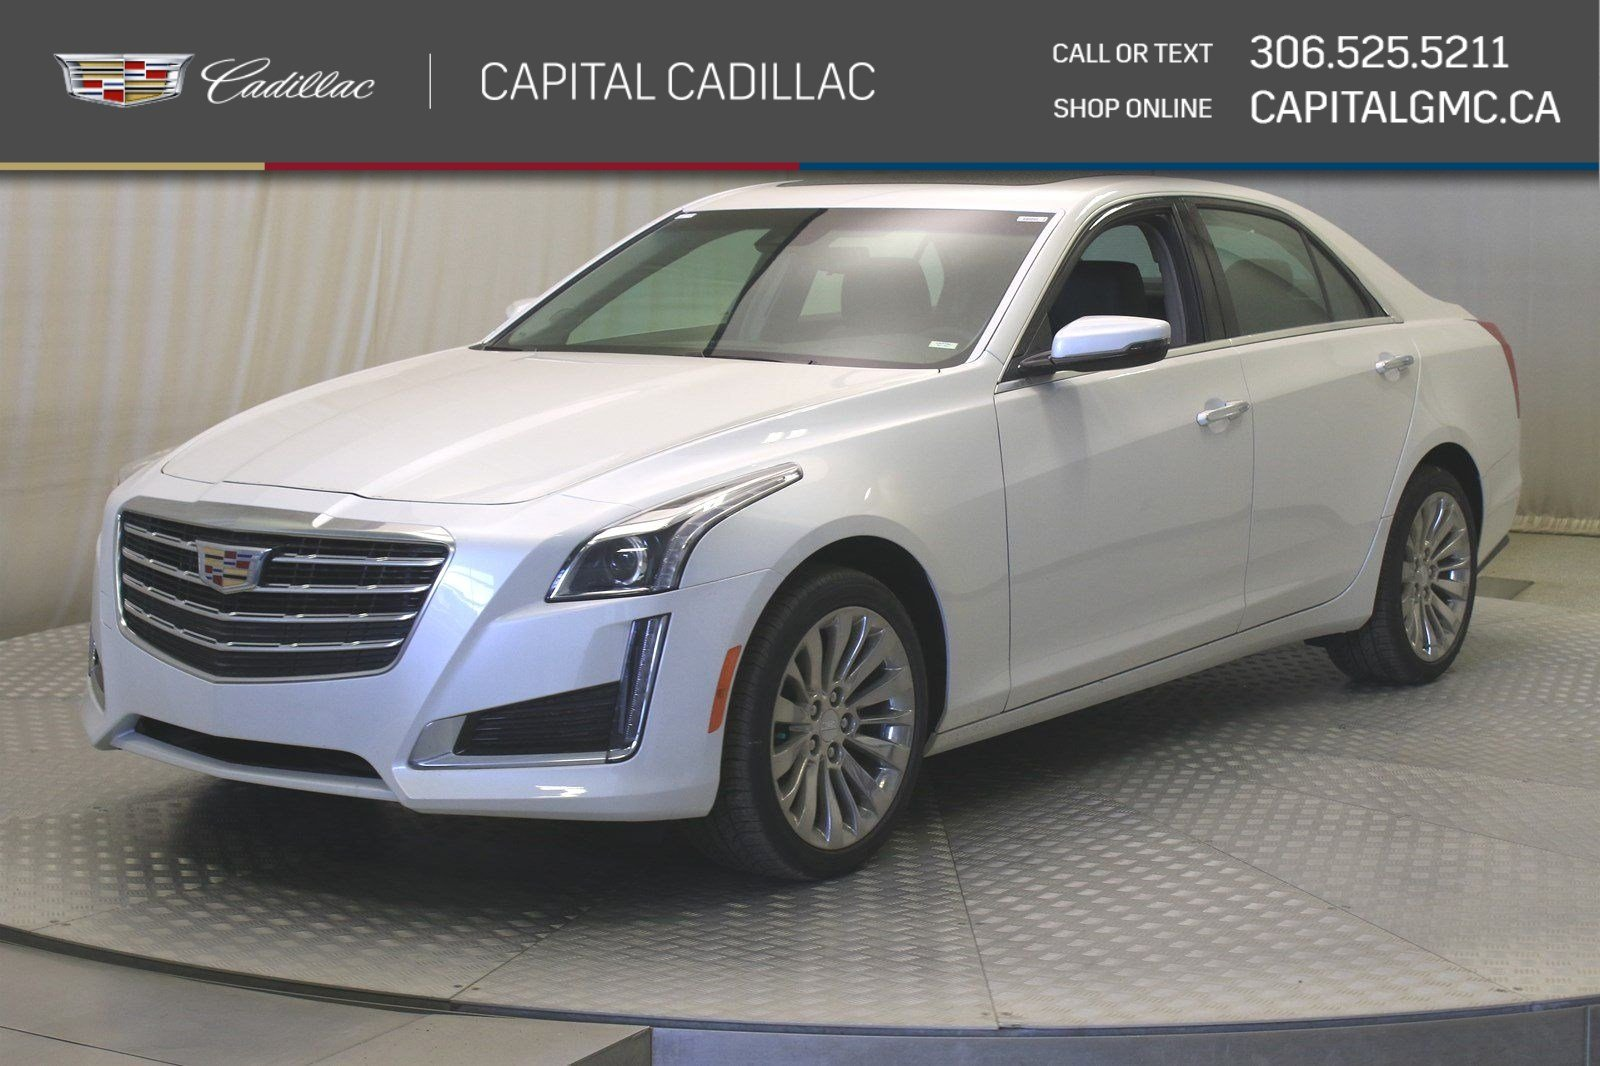 New 2019 Cadillac CTS Sedan Luxury AWD*Sunroof-Carbon Fibre Trim-Rear Camera Mirror*